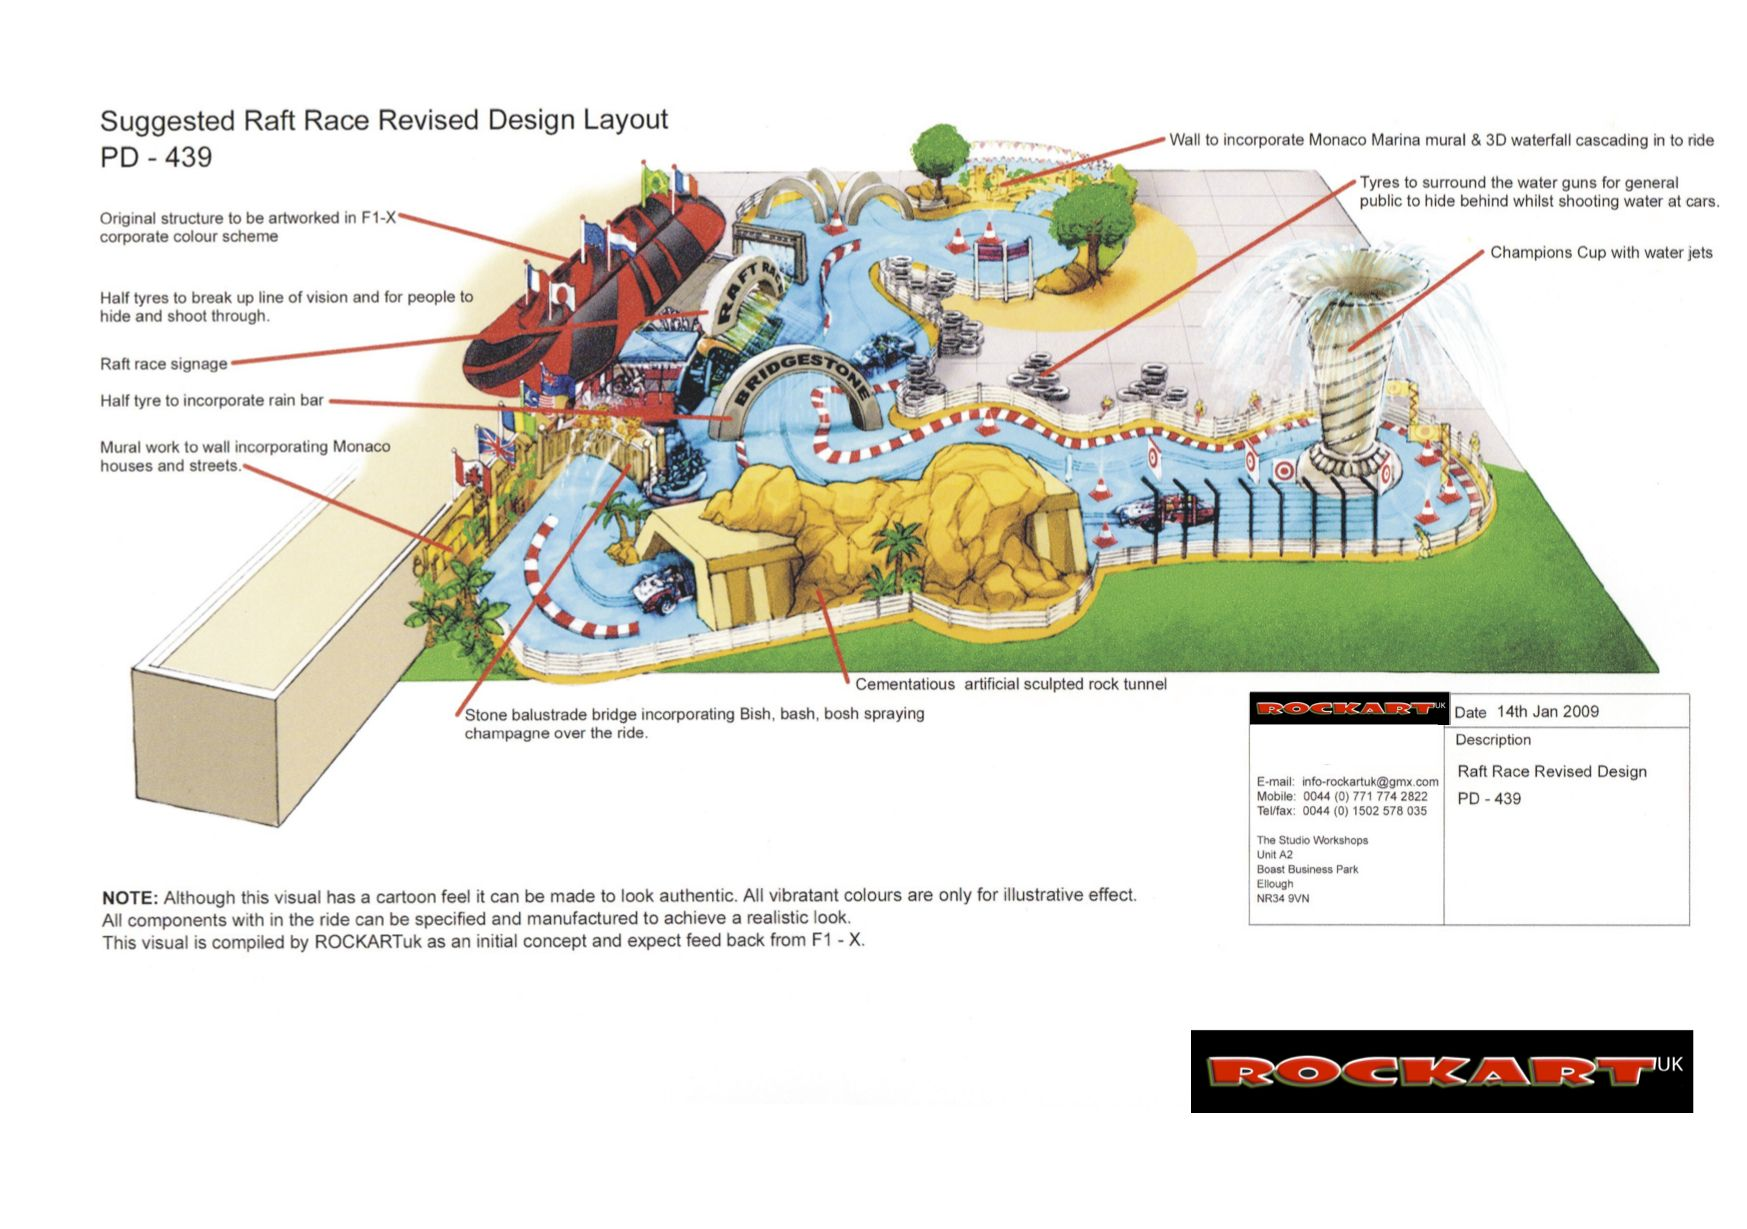 Ride Design For F1 X Theme Park Dubialand Dubia Uea By Rockartuk Parking Design Theme Park Design